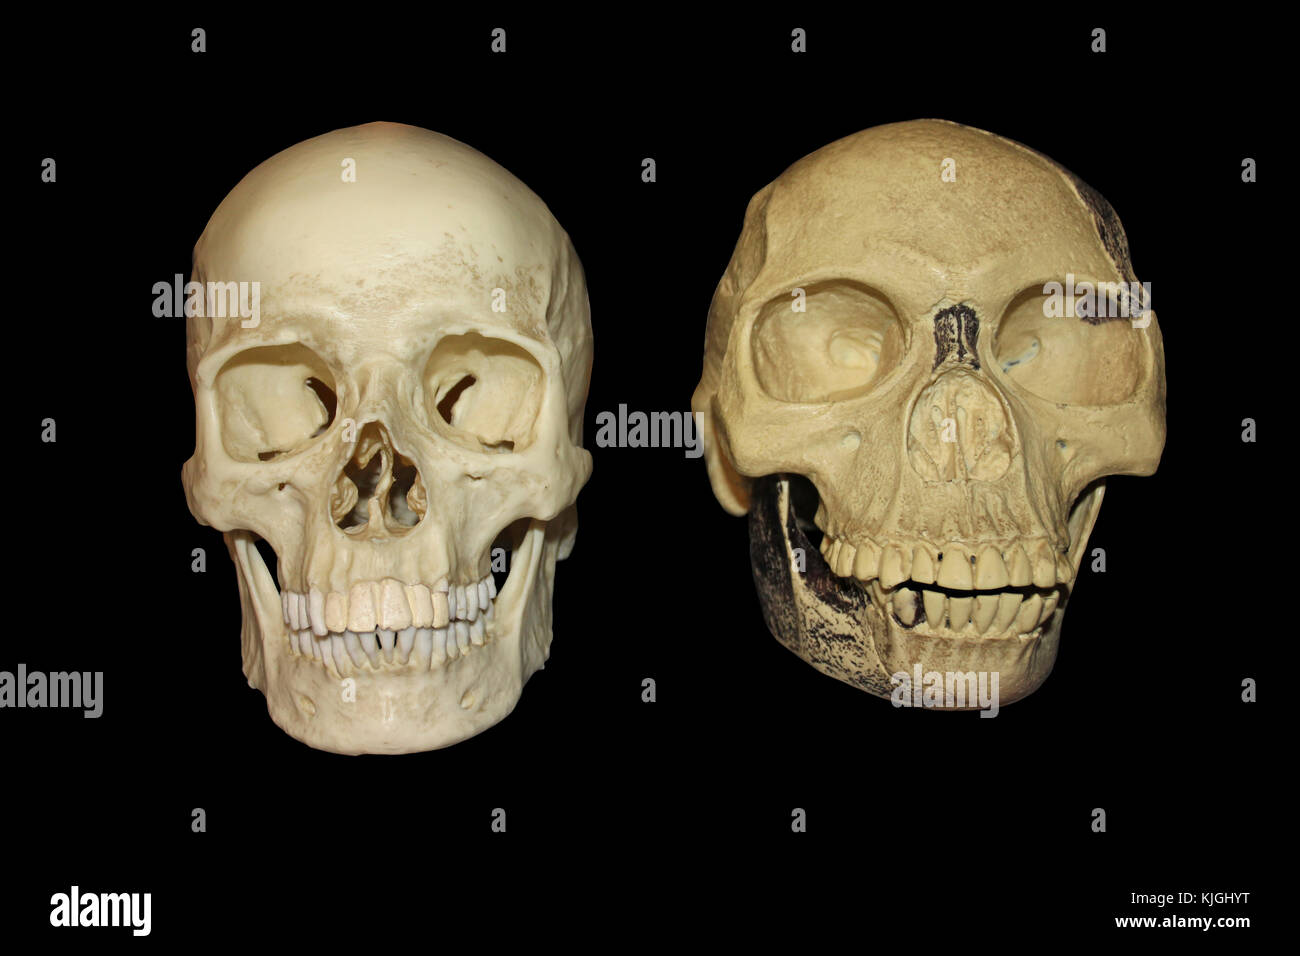 Comparison Piltdown Man Vs Modern Human Skull Front View Stock Photo